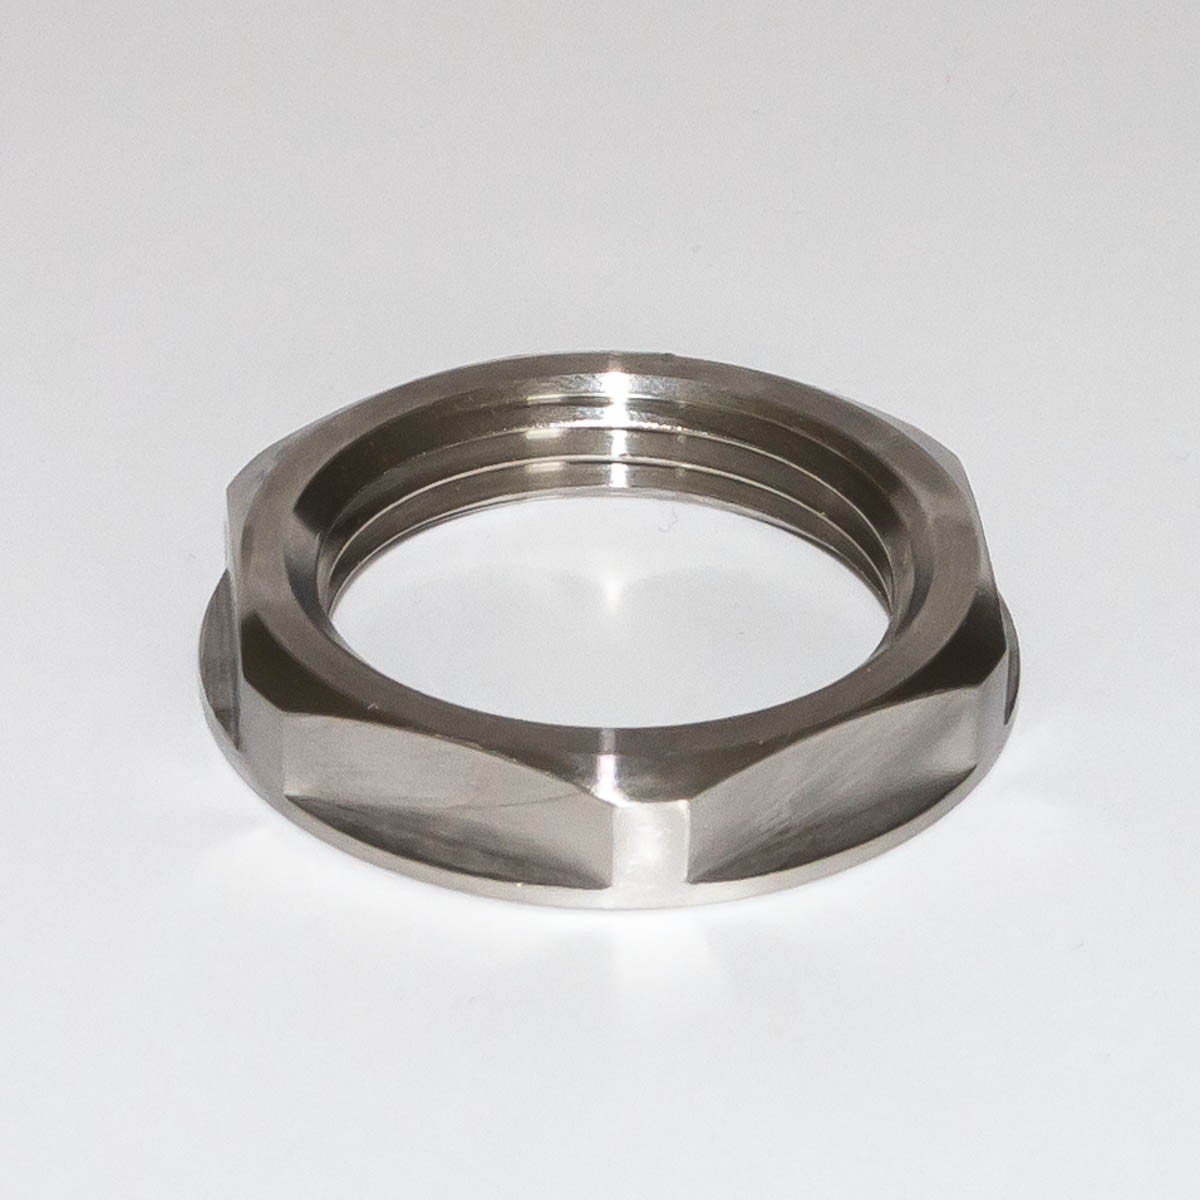 """1"""" NPS locknut for Camco heating element"""